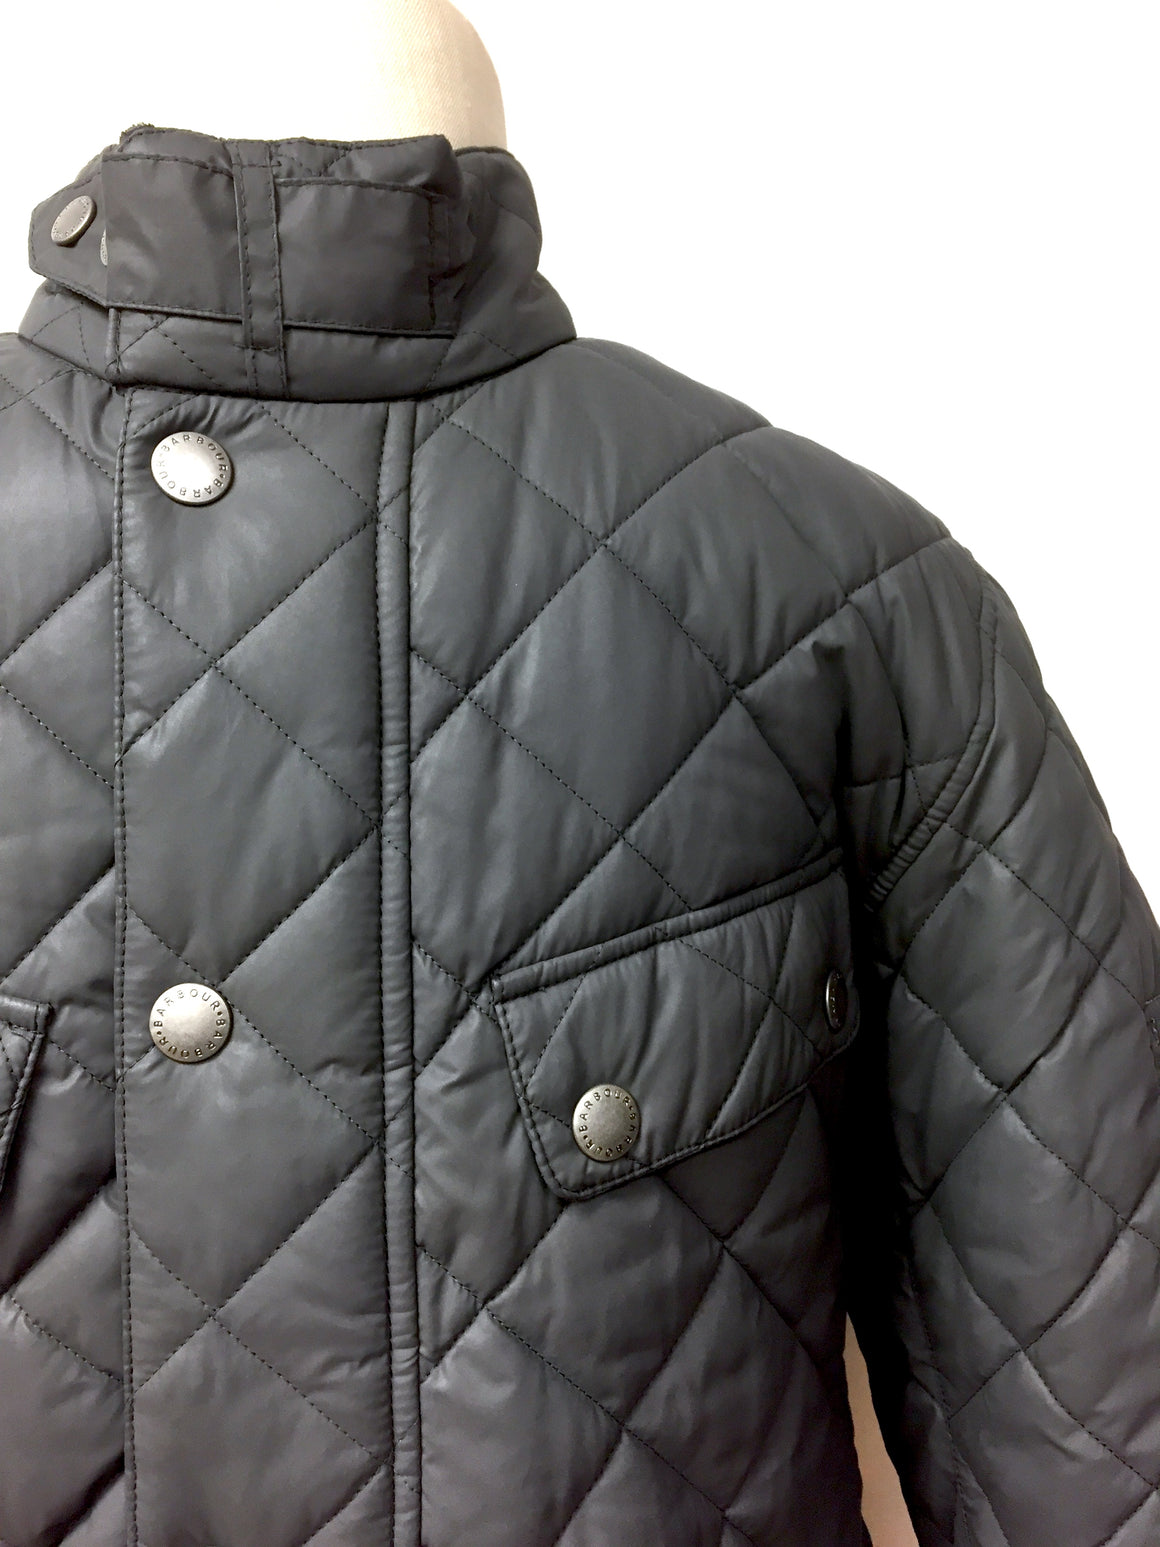 BARBOUR INTERNATIONAL Graphite-Gray Diamond-Quilted Polyester Men's Jacket SzM